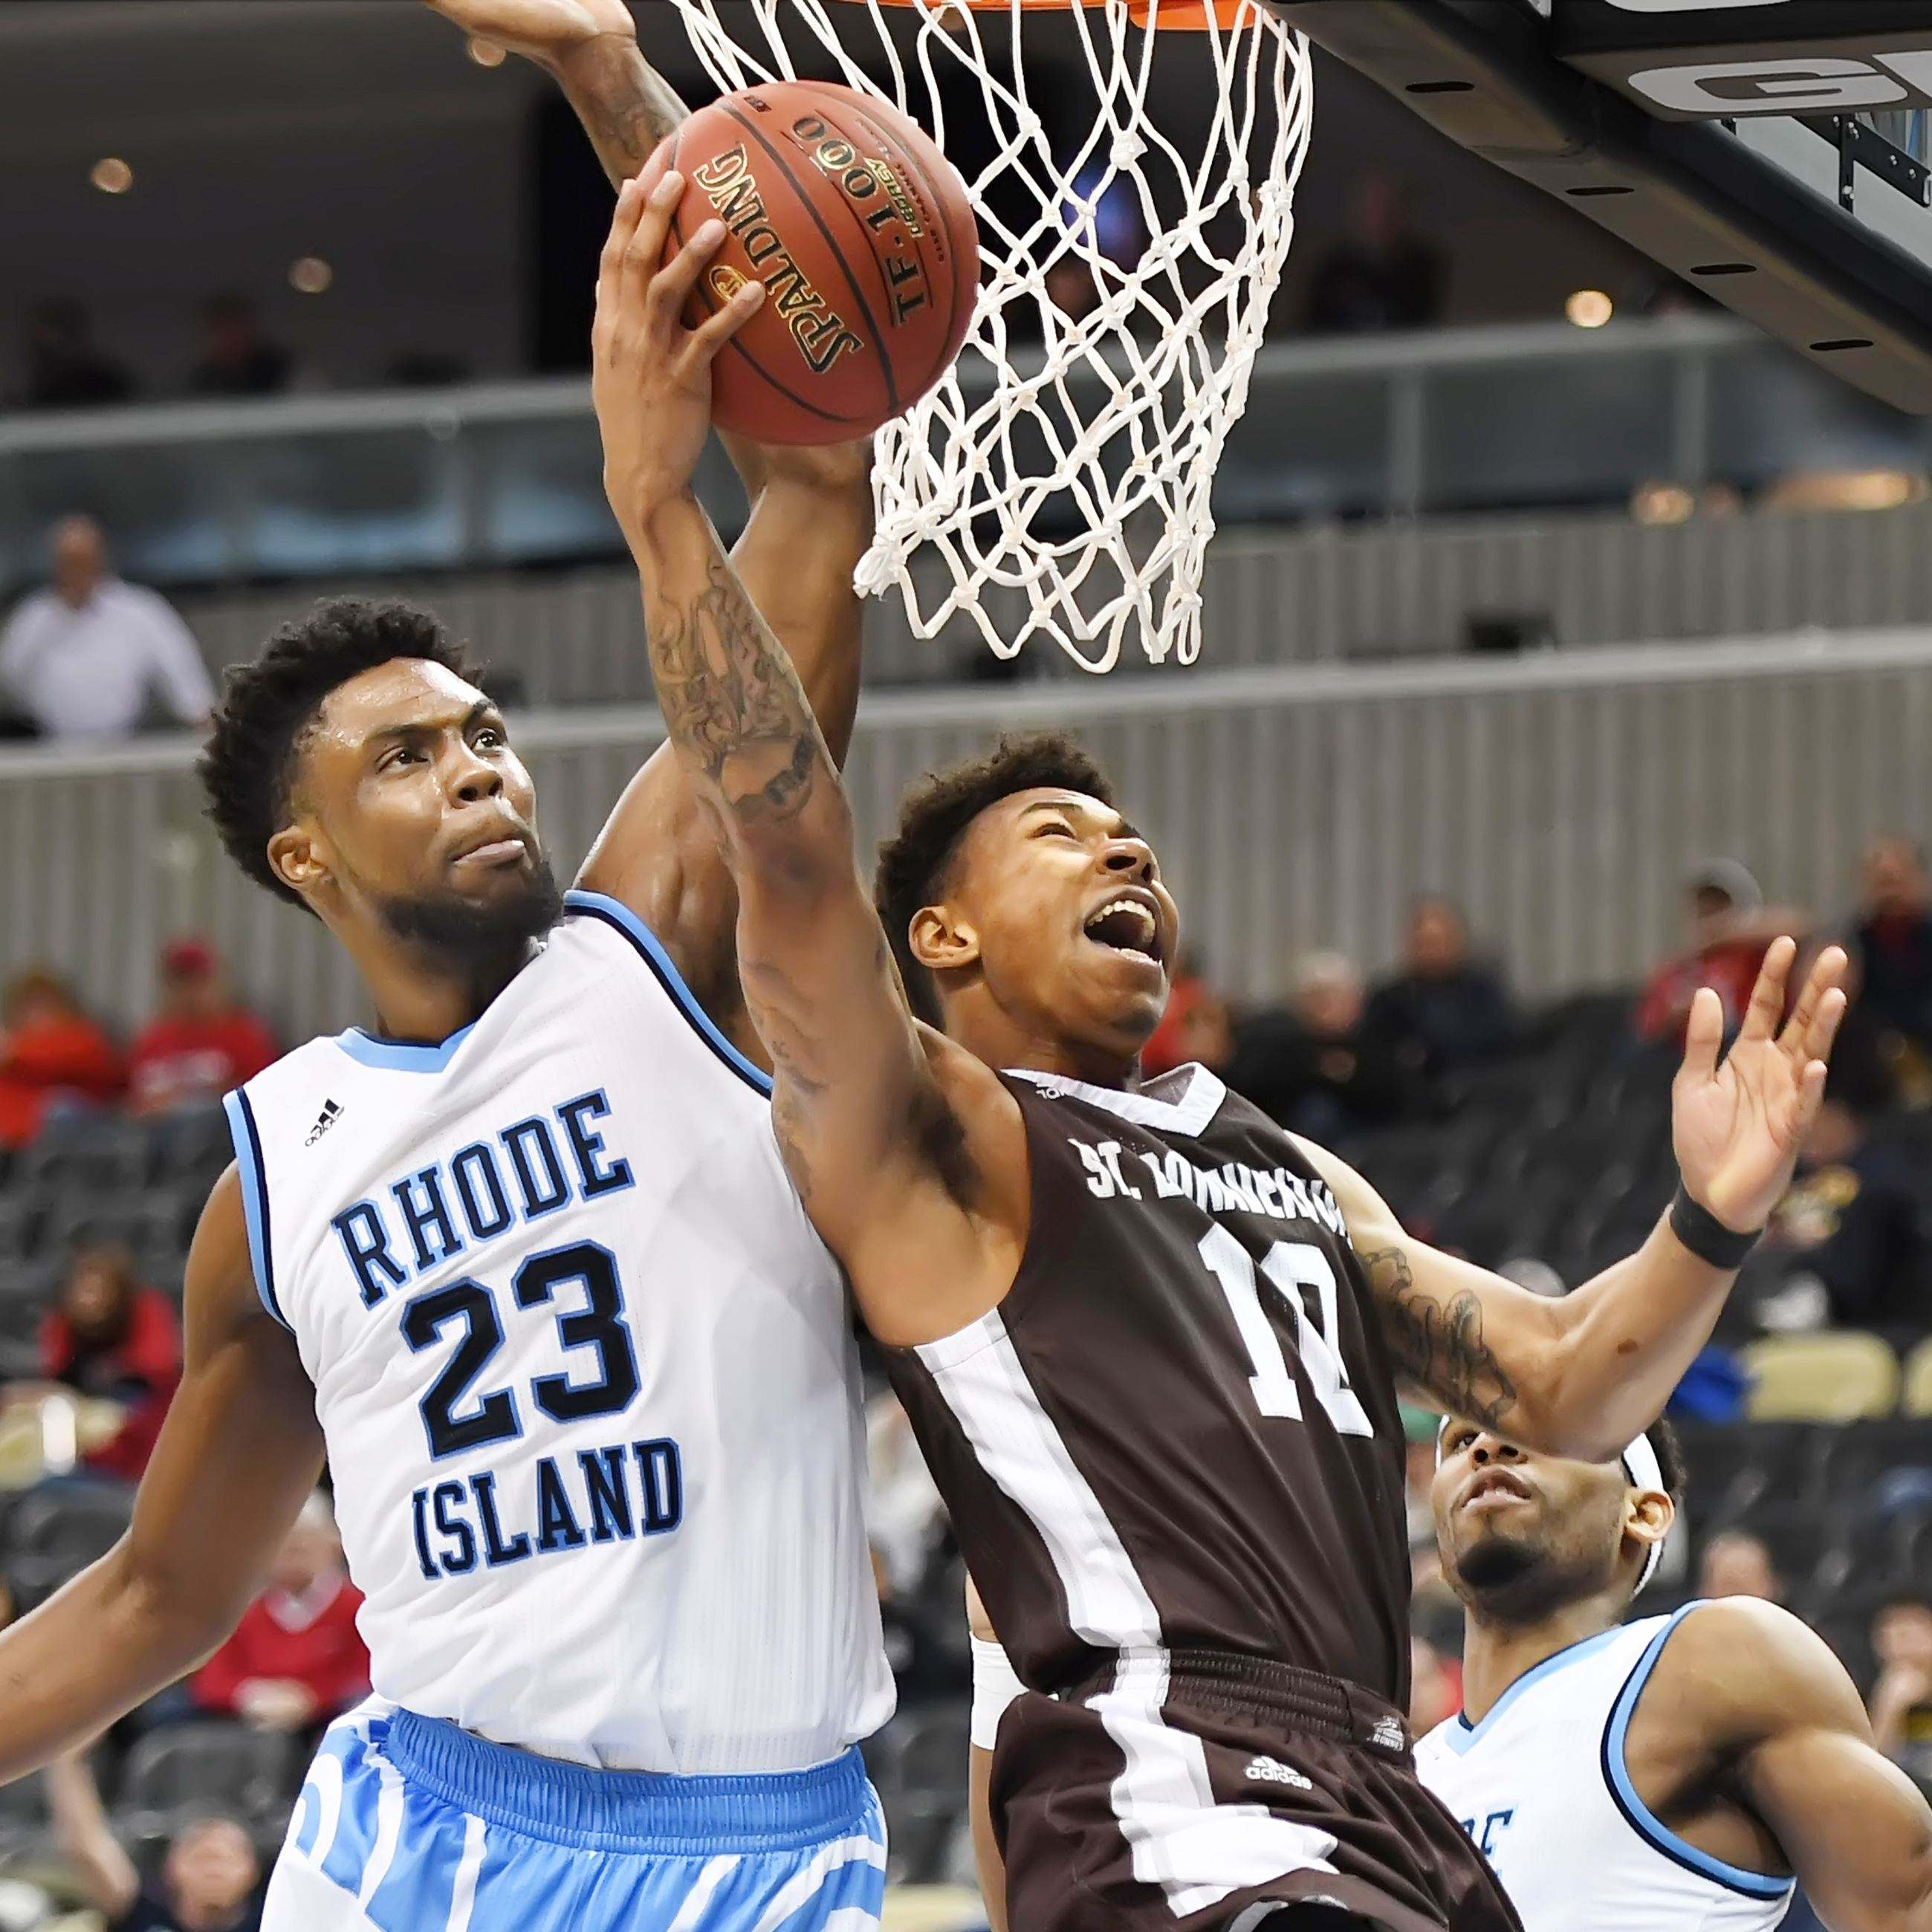 URI Wins A-10 Championship Beating VCU 70-63